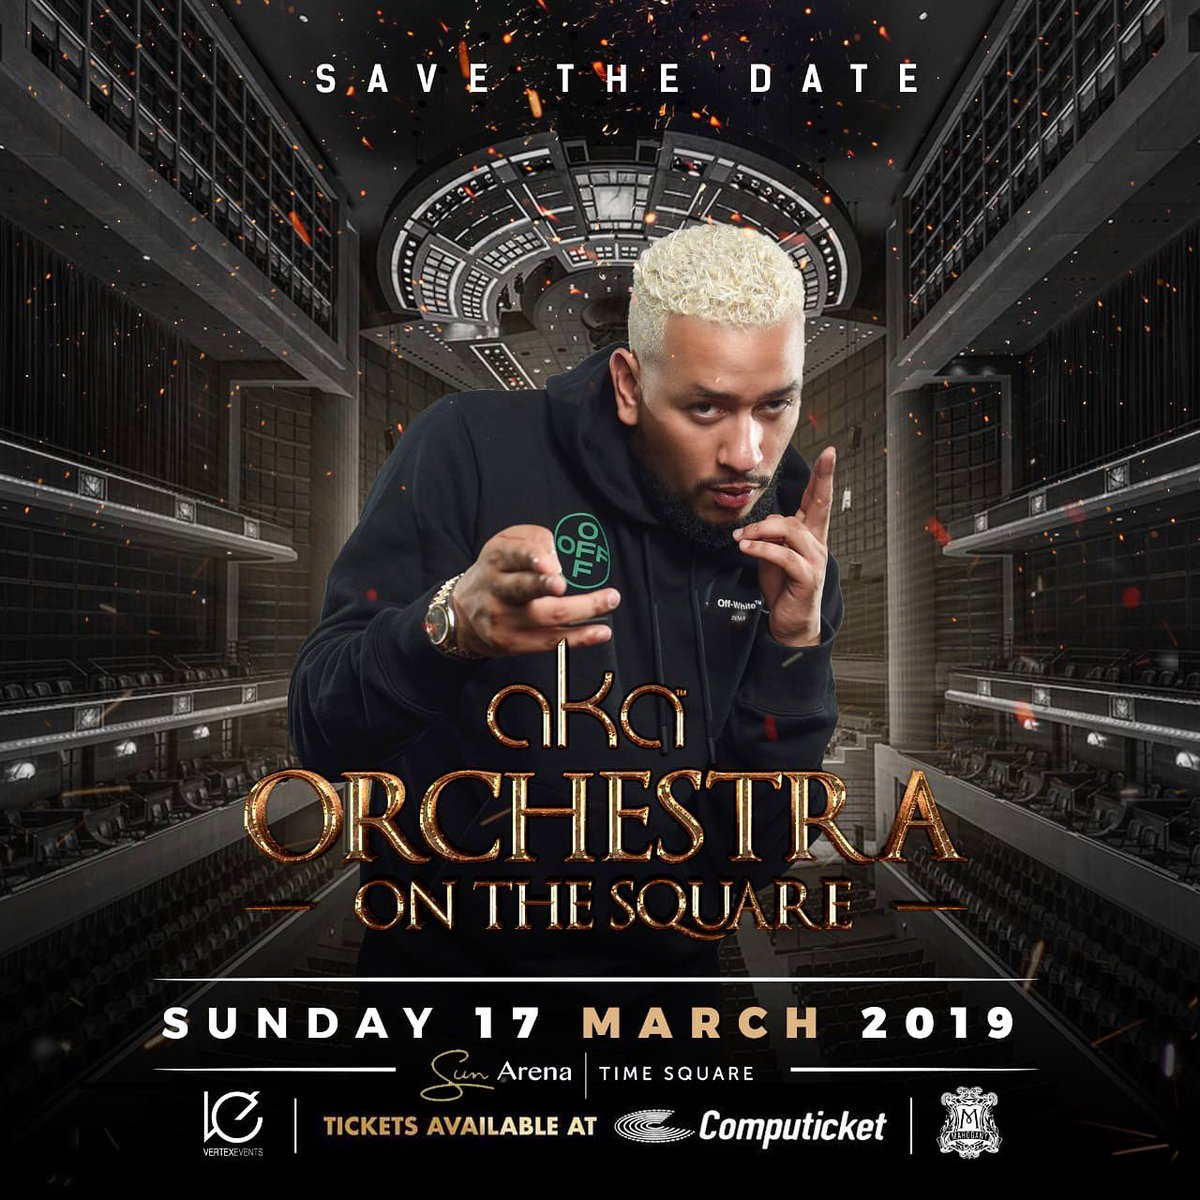 It gives me great pleasure to announce my concert at the Sun Arena on the 17th of March LIVE with a 30 piece Orchestra. 🎻 and band. I believe now, with 3 classic solo albums done and dusted, the time is right. #AKAOrchestraOnTheSquare Tickets available @Computicket 🎟